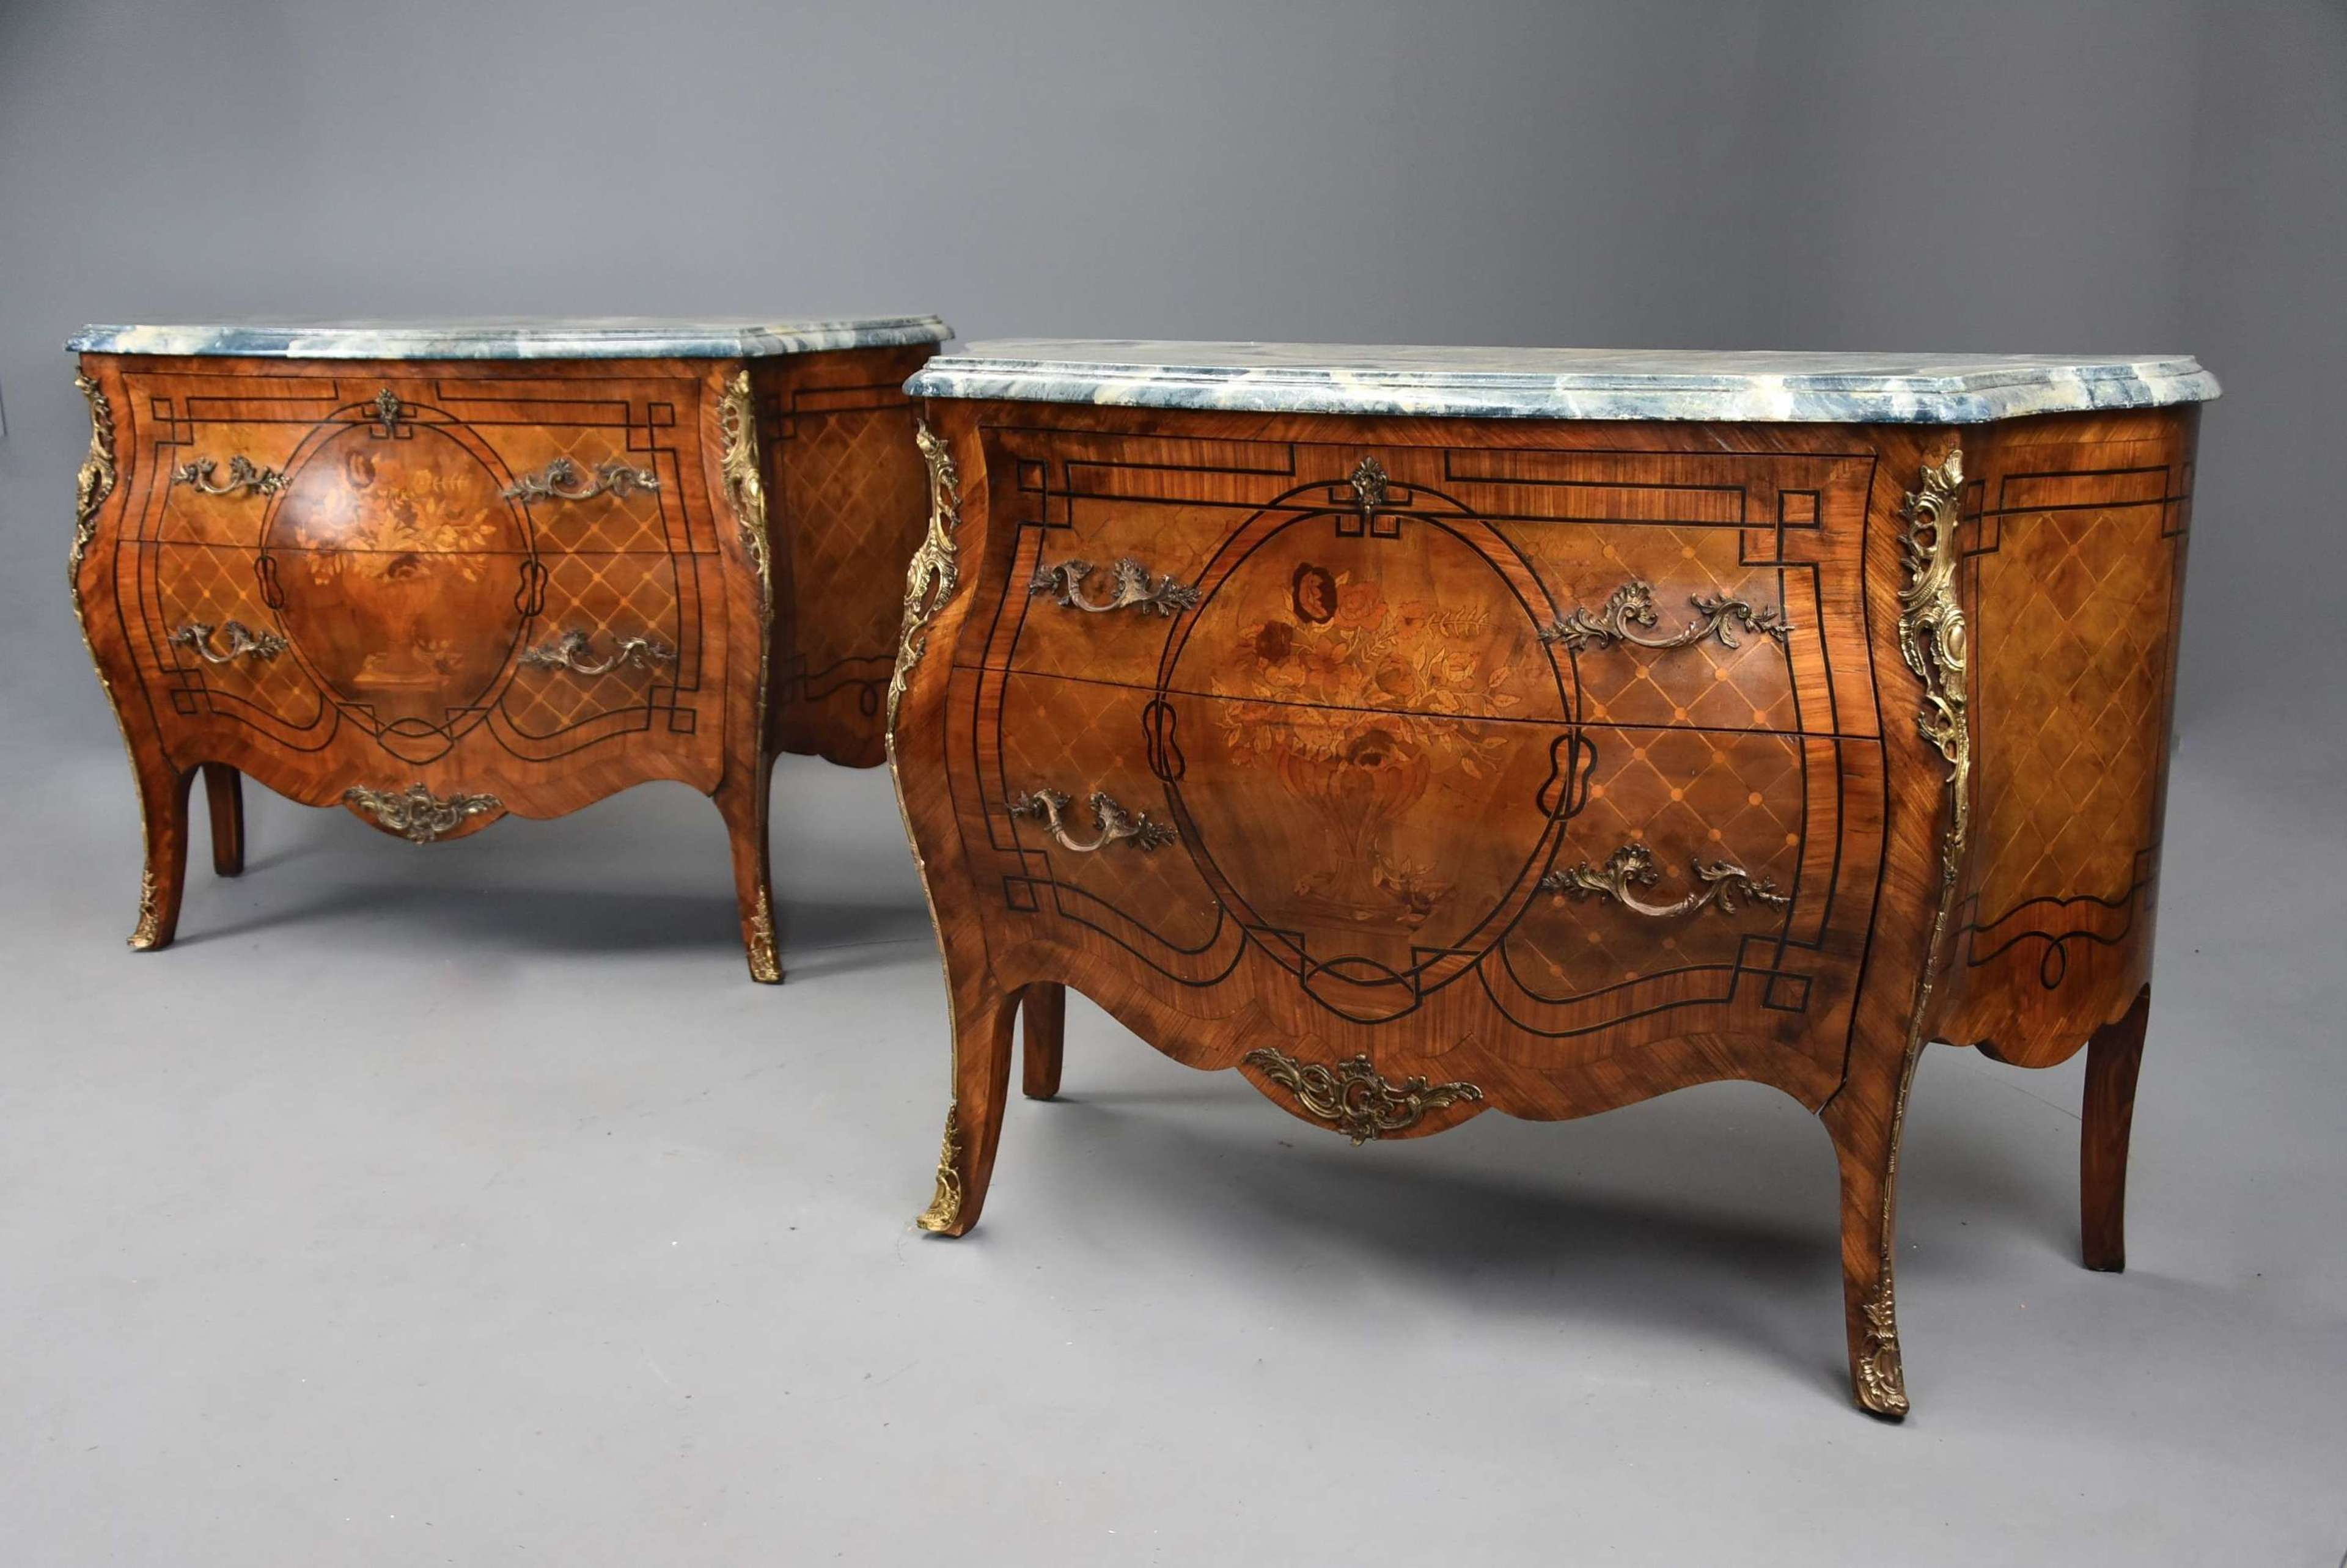 Pair of French early 20thc highly decorative Kingwood bombe commodes